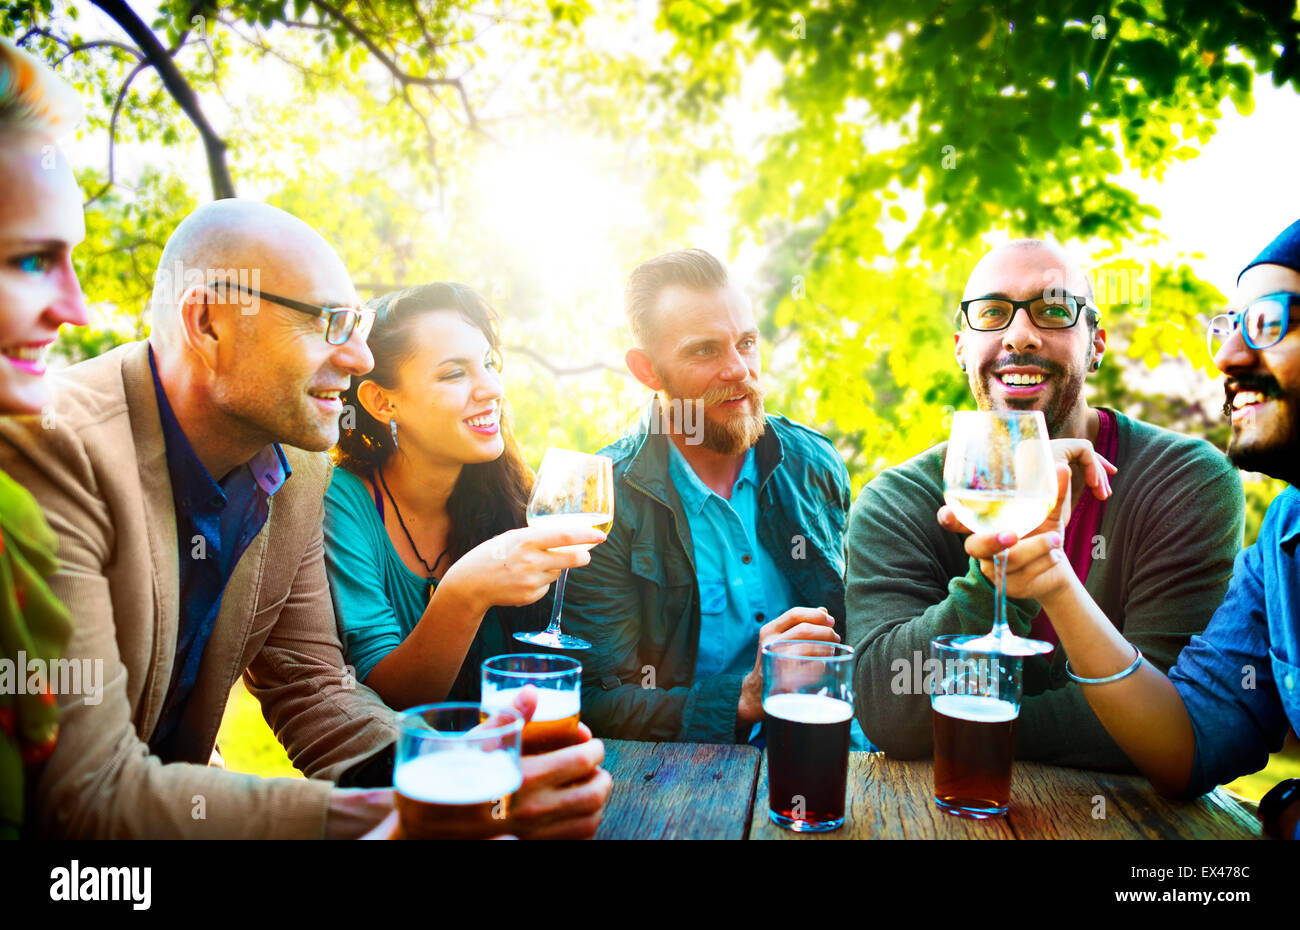 Diverse People Friends Hanging Out Drinking Concept - Stock Image